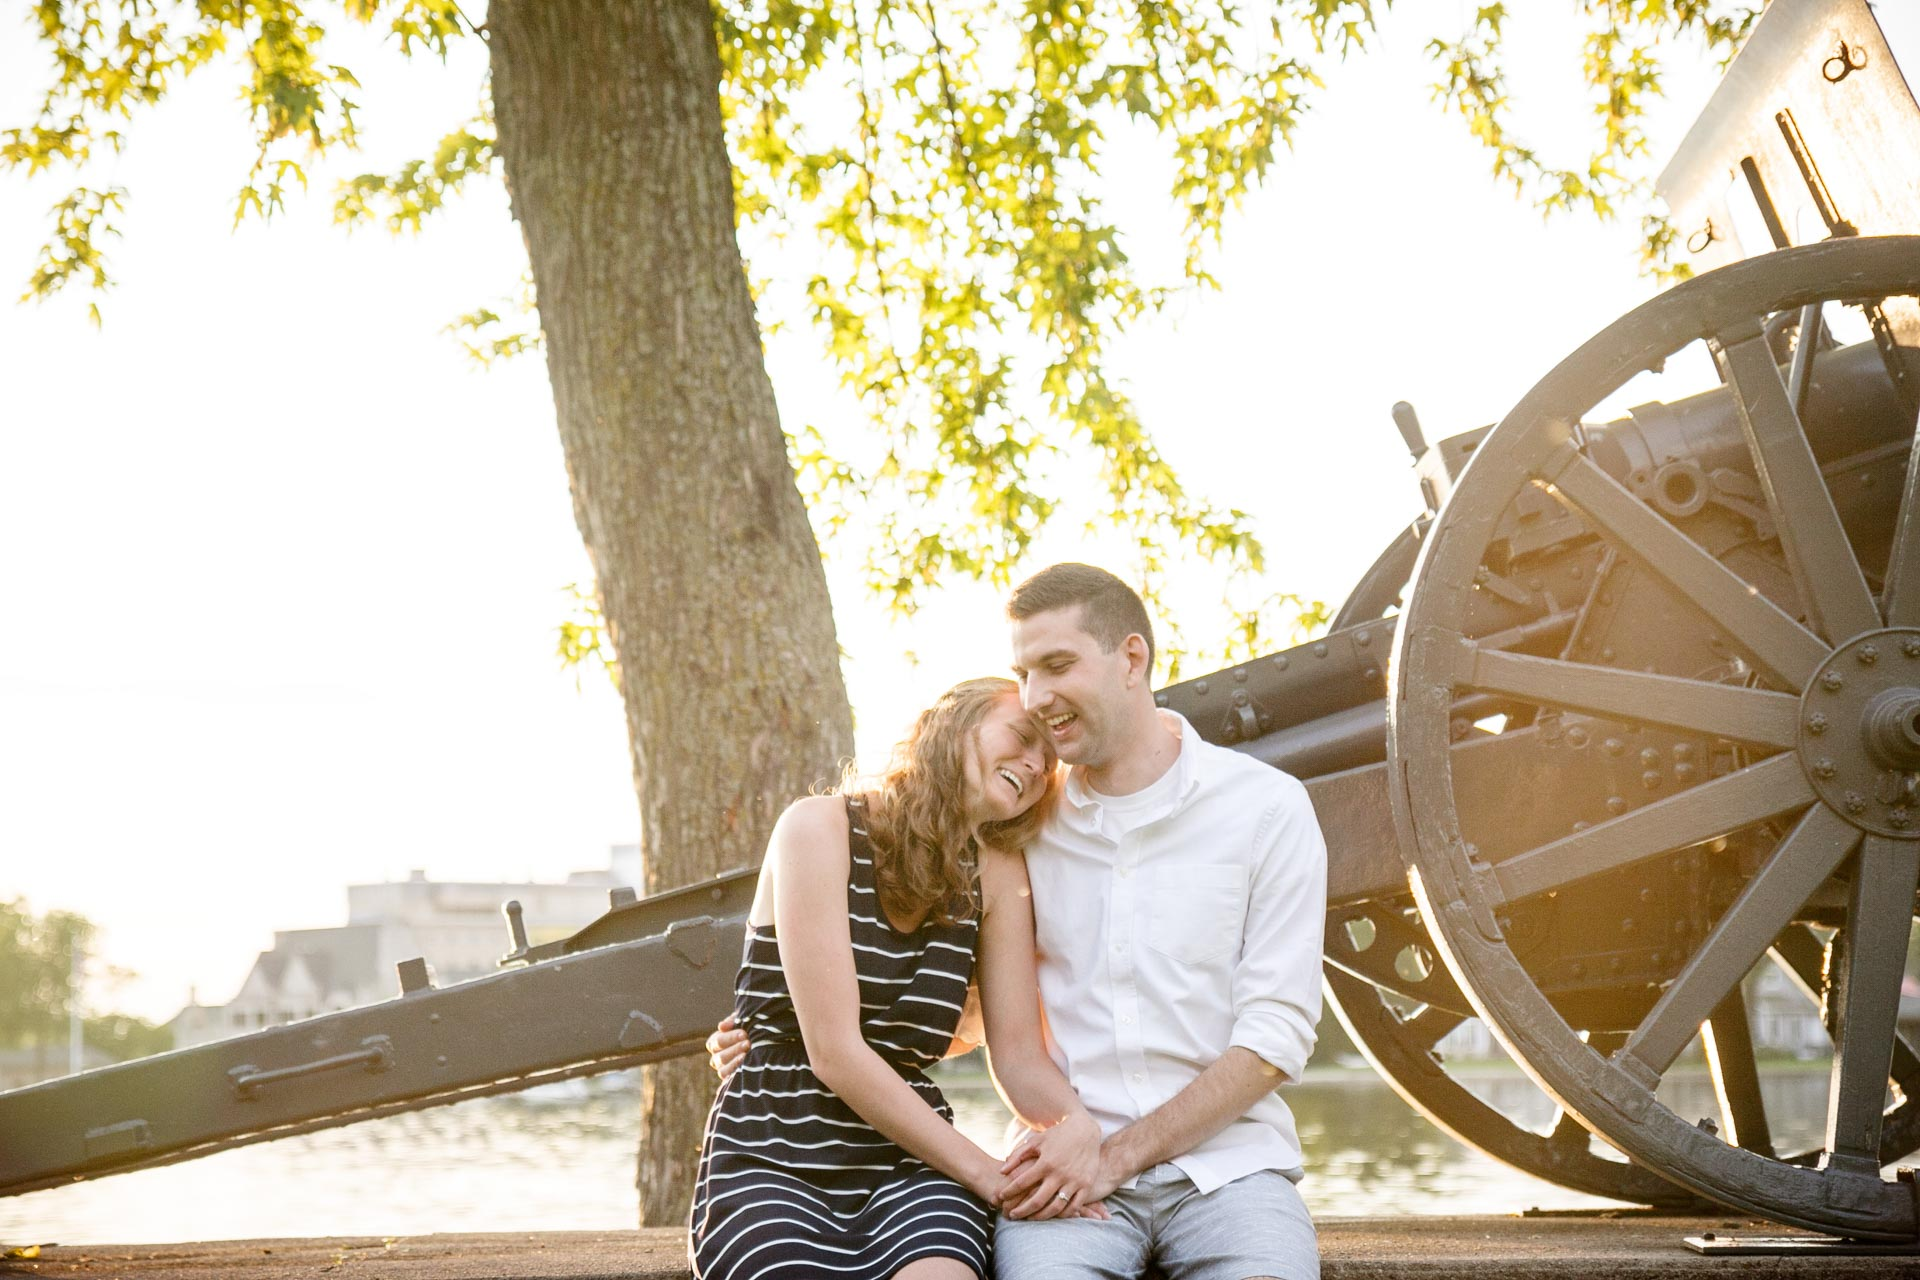 riverside-park-neenah-engagement-adam-shea-photography-green-bay-appleton-neenah-photographer-7.jpg